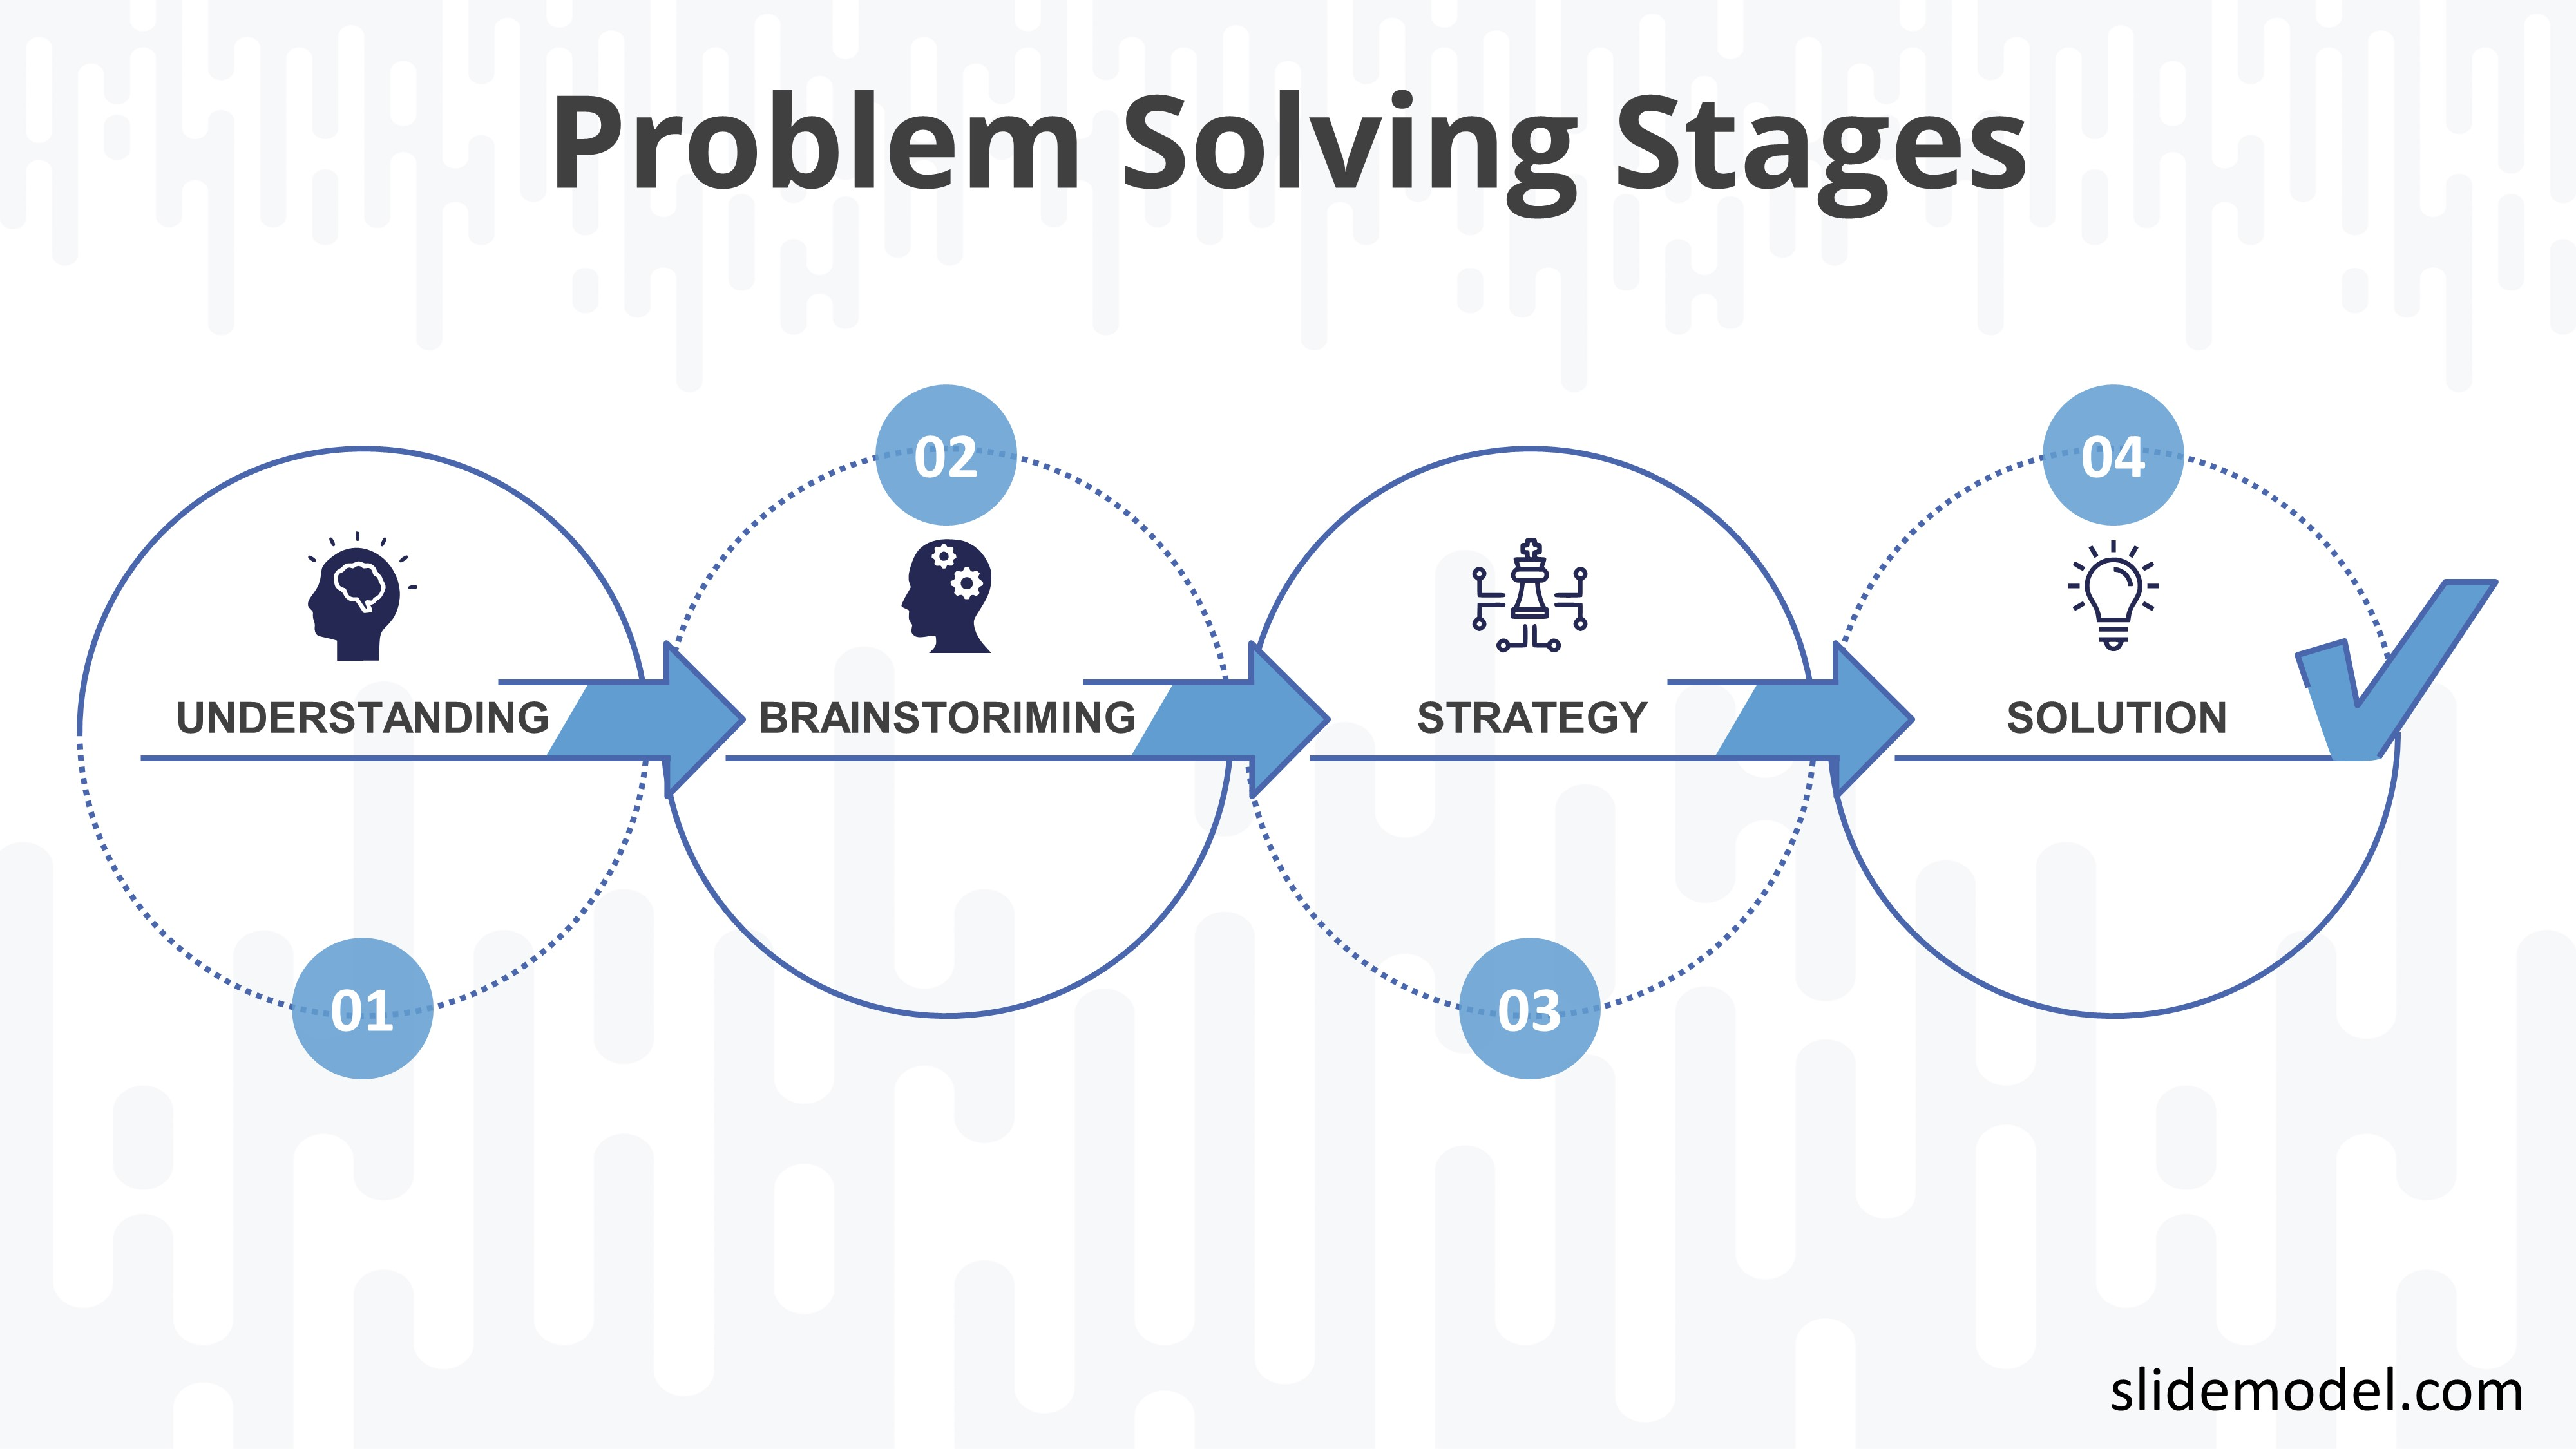 PPT Template Problem Solving Stages